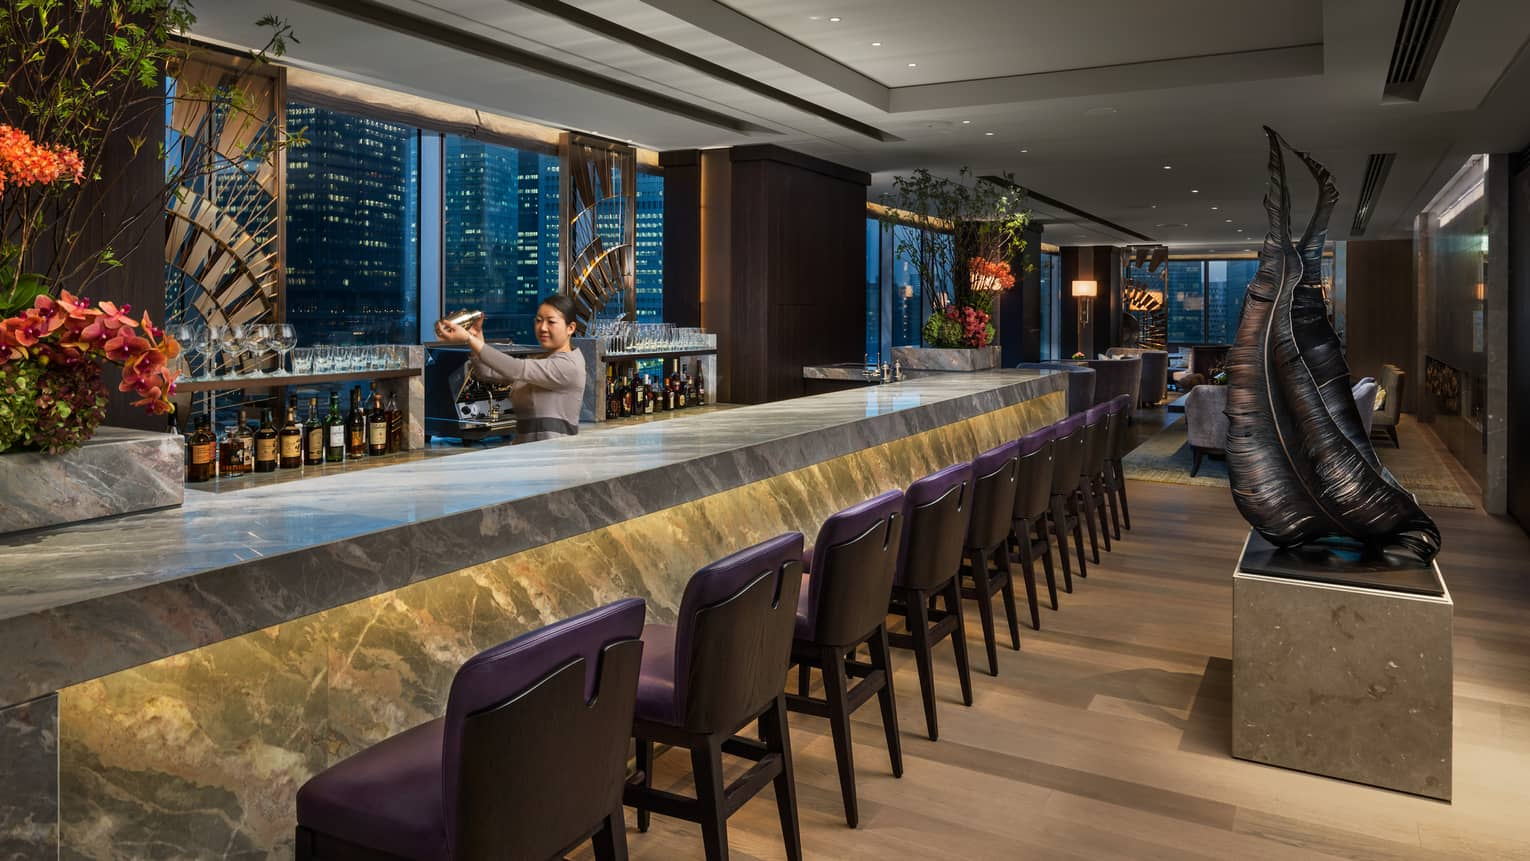 Bartender shakes silver cocktail mixer behind grey marble bar with purple stools, modern sculptures